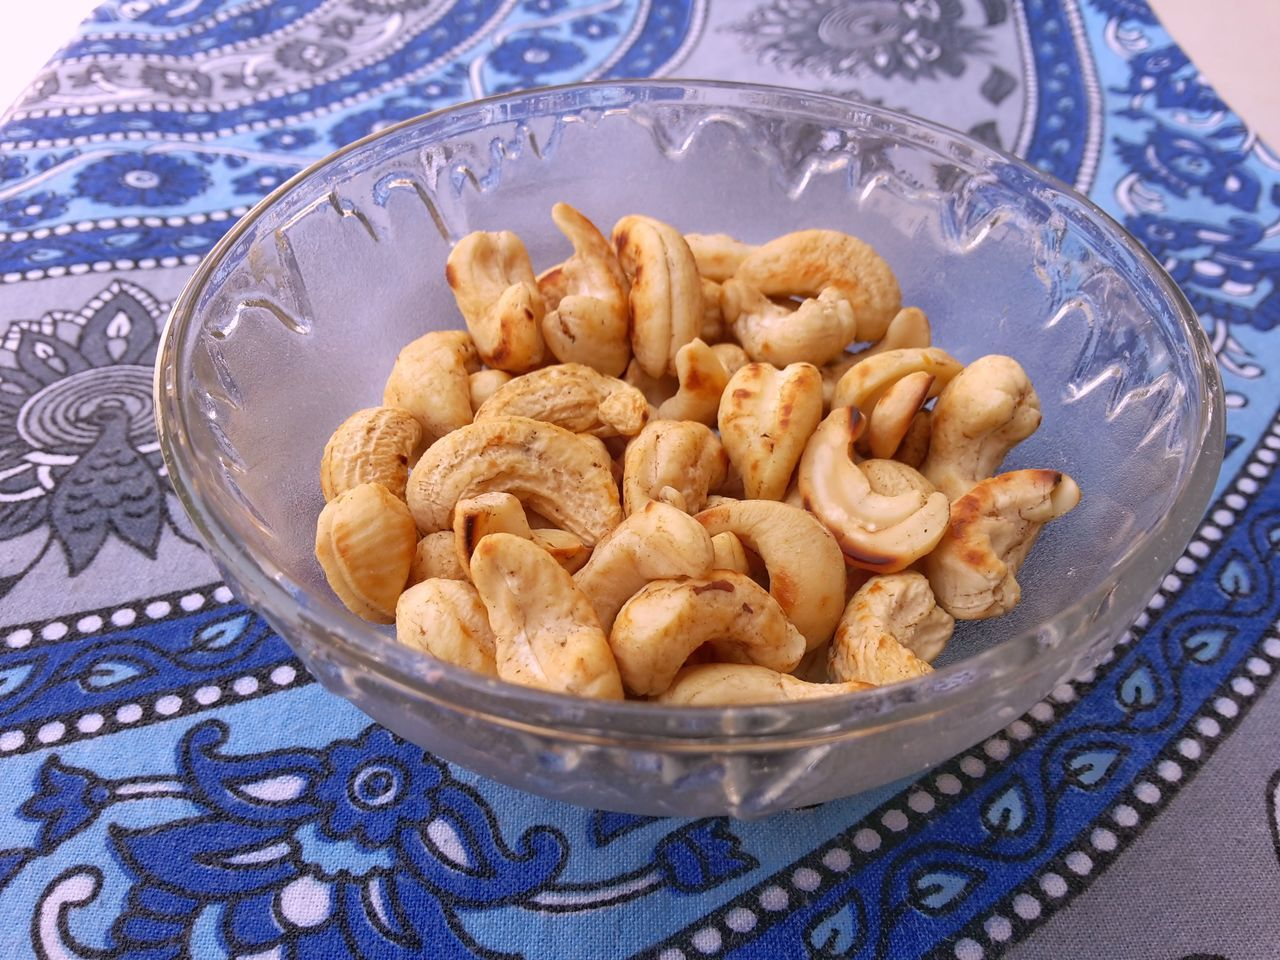 Food Healthy Eating Food And Drink Close-up Tablecloth Plate Freshness No People Ready-to-eat Indoors  Day Cashewnuts Cashew Cashew Nuts Cashews Cashewnut Cashew Fruit Dry Fruit Dry Fruits Close Up Shot Foodphotography Close Up Photography Things In A Glass Glass Glass - Material